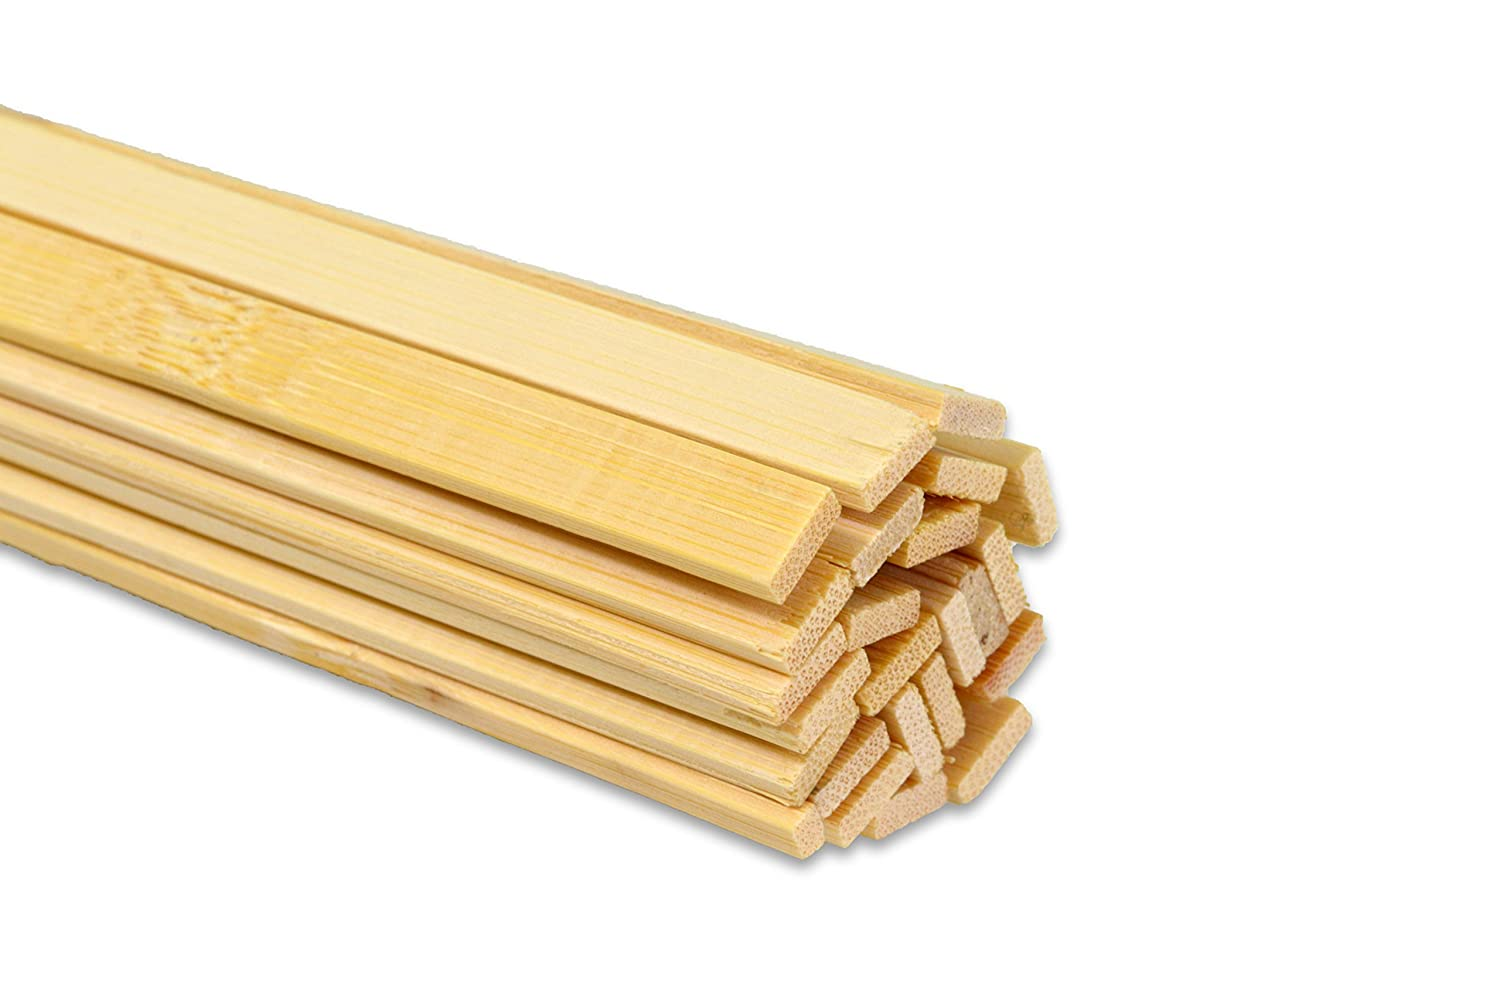 15.5 Extra Long Wooden Craft Sticks. Flexible, Can be Made to Curve, Strong. Natural Bamboo. 48 Pieces. 3/8 wide The Best Hostess FBA_S25L40W09